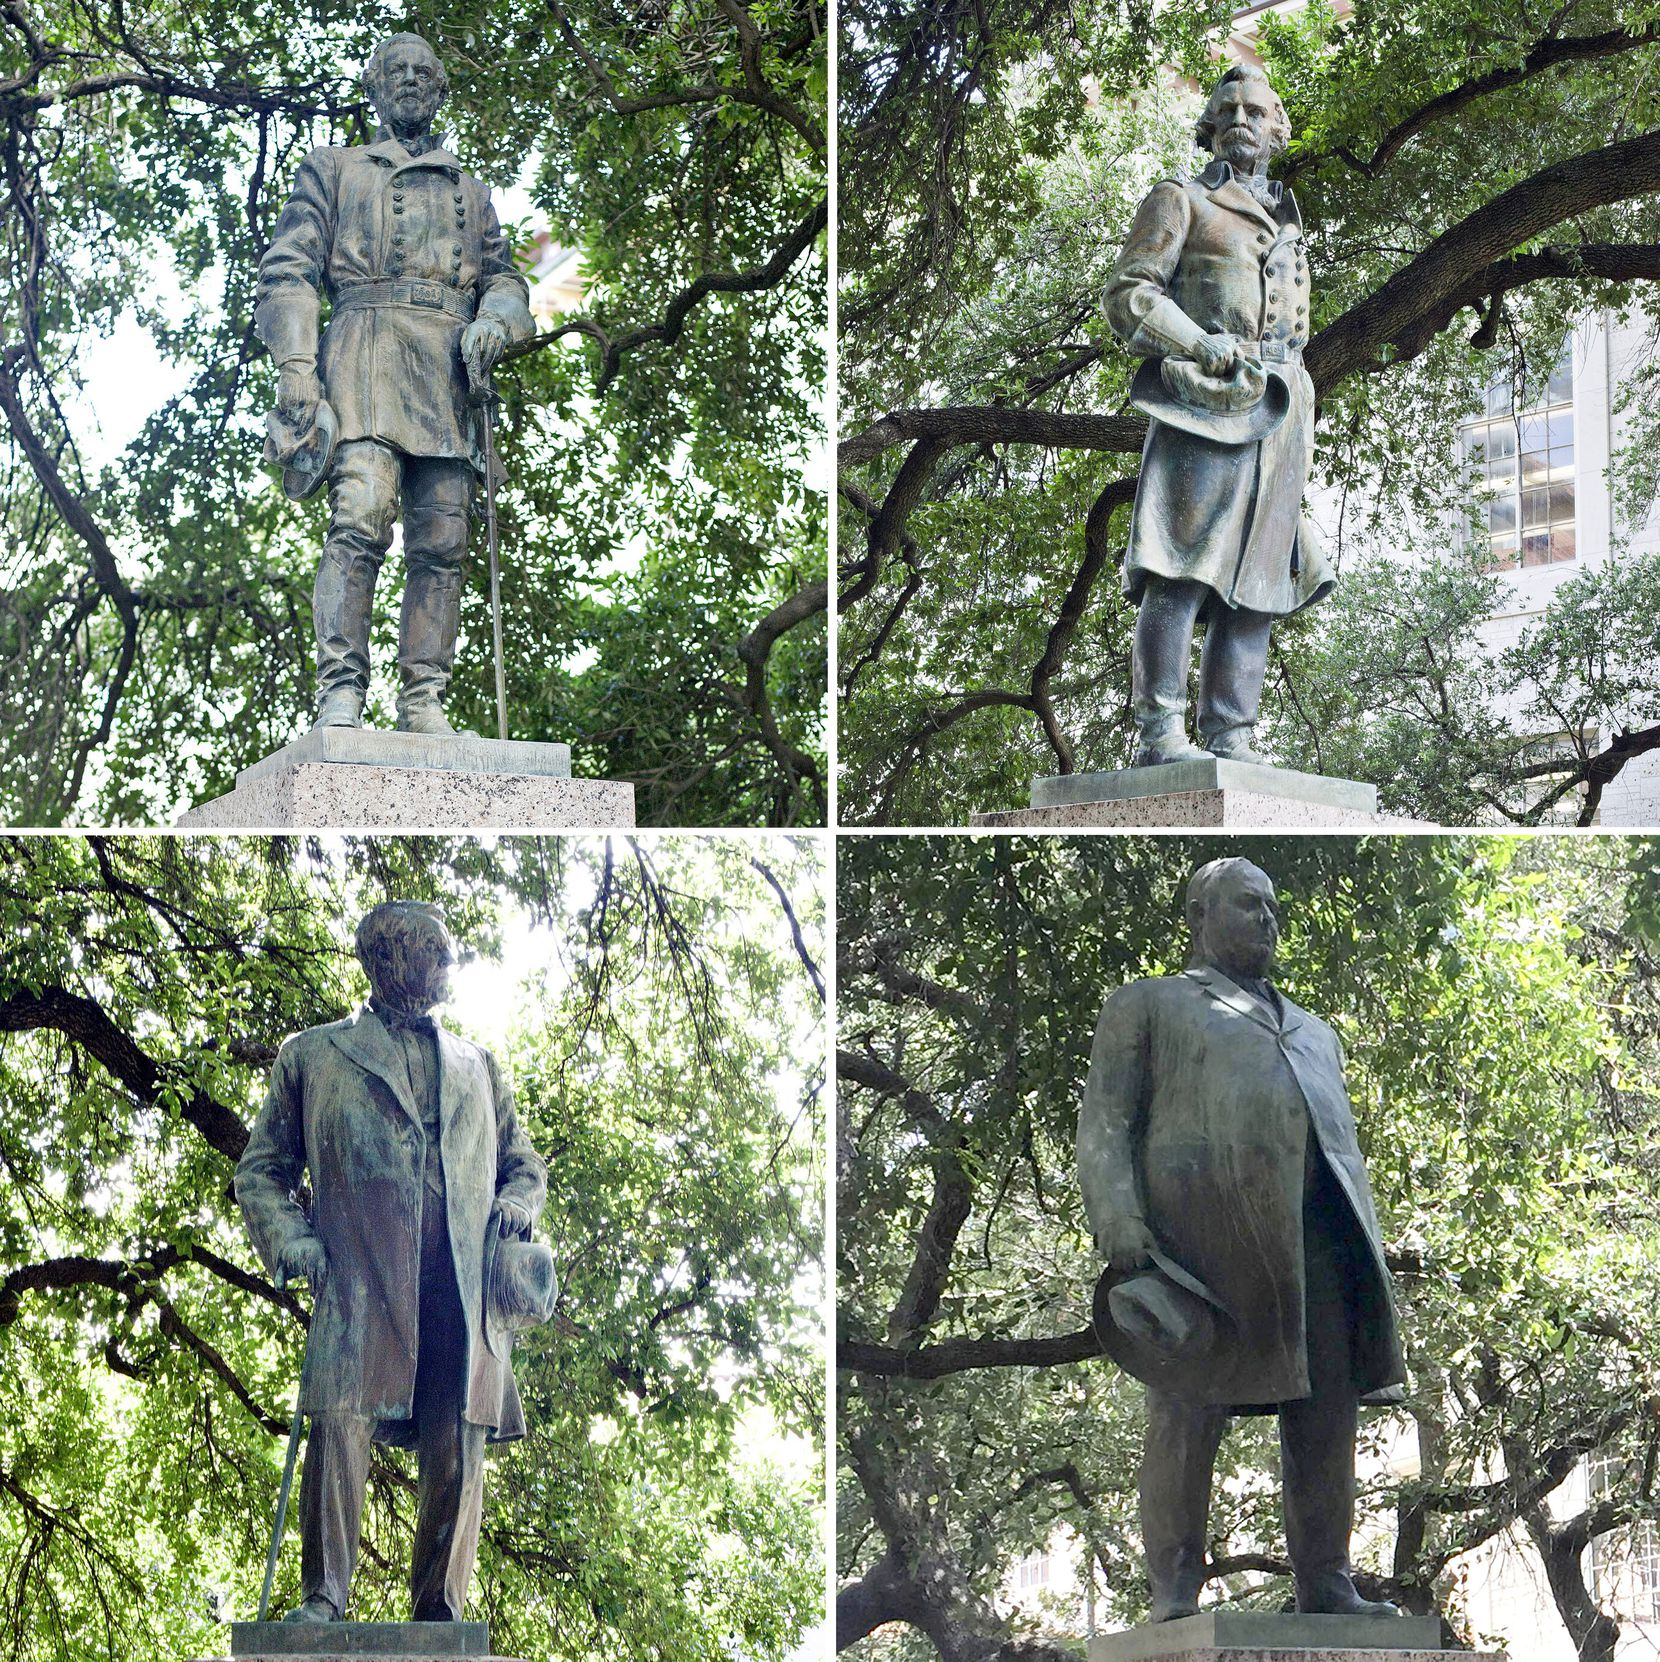 The four statues removed from the University of Texas at Austin's South Mall were (clockwise from top left): Robert E. Lee, Albert Sidney Johnston, Gov. James Hogg and John Reagan.